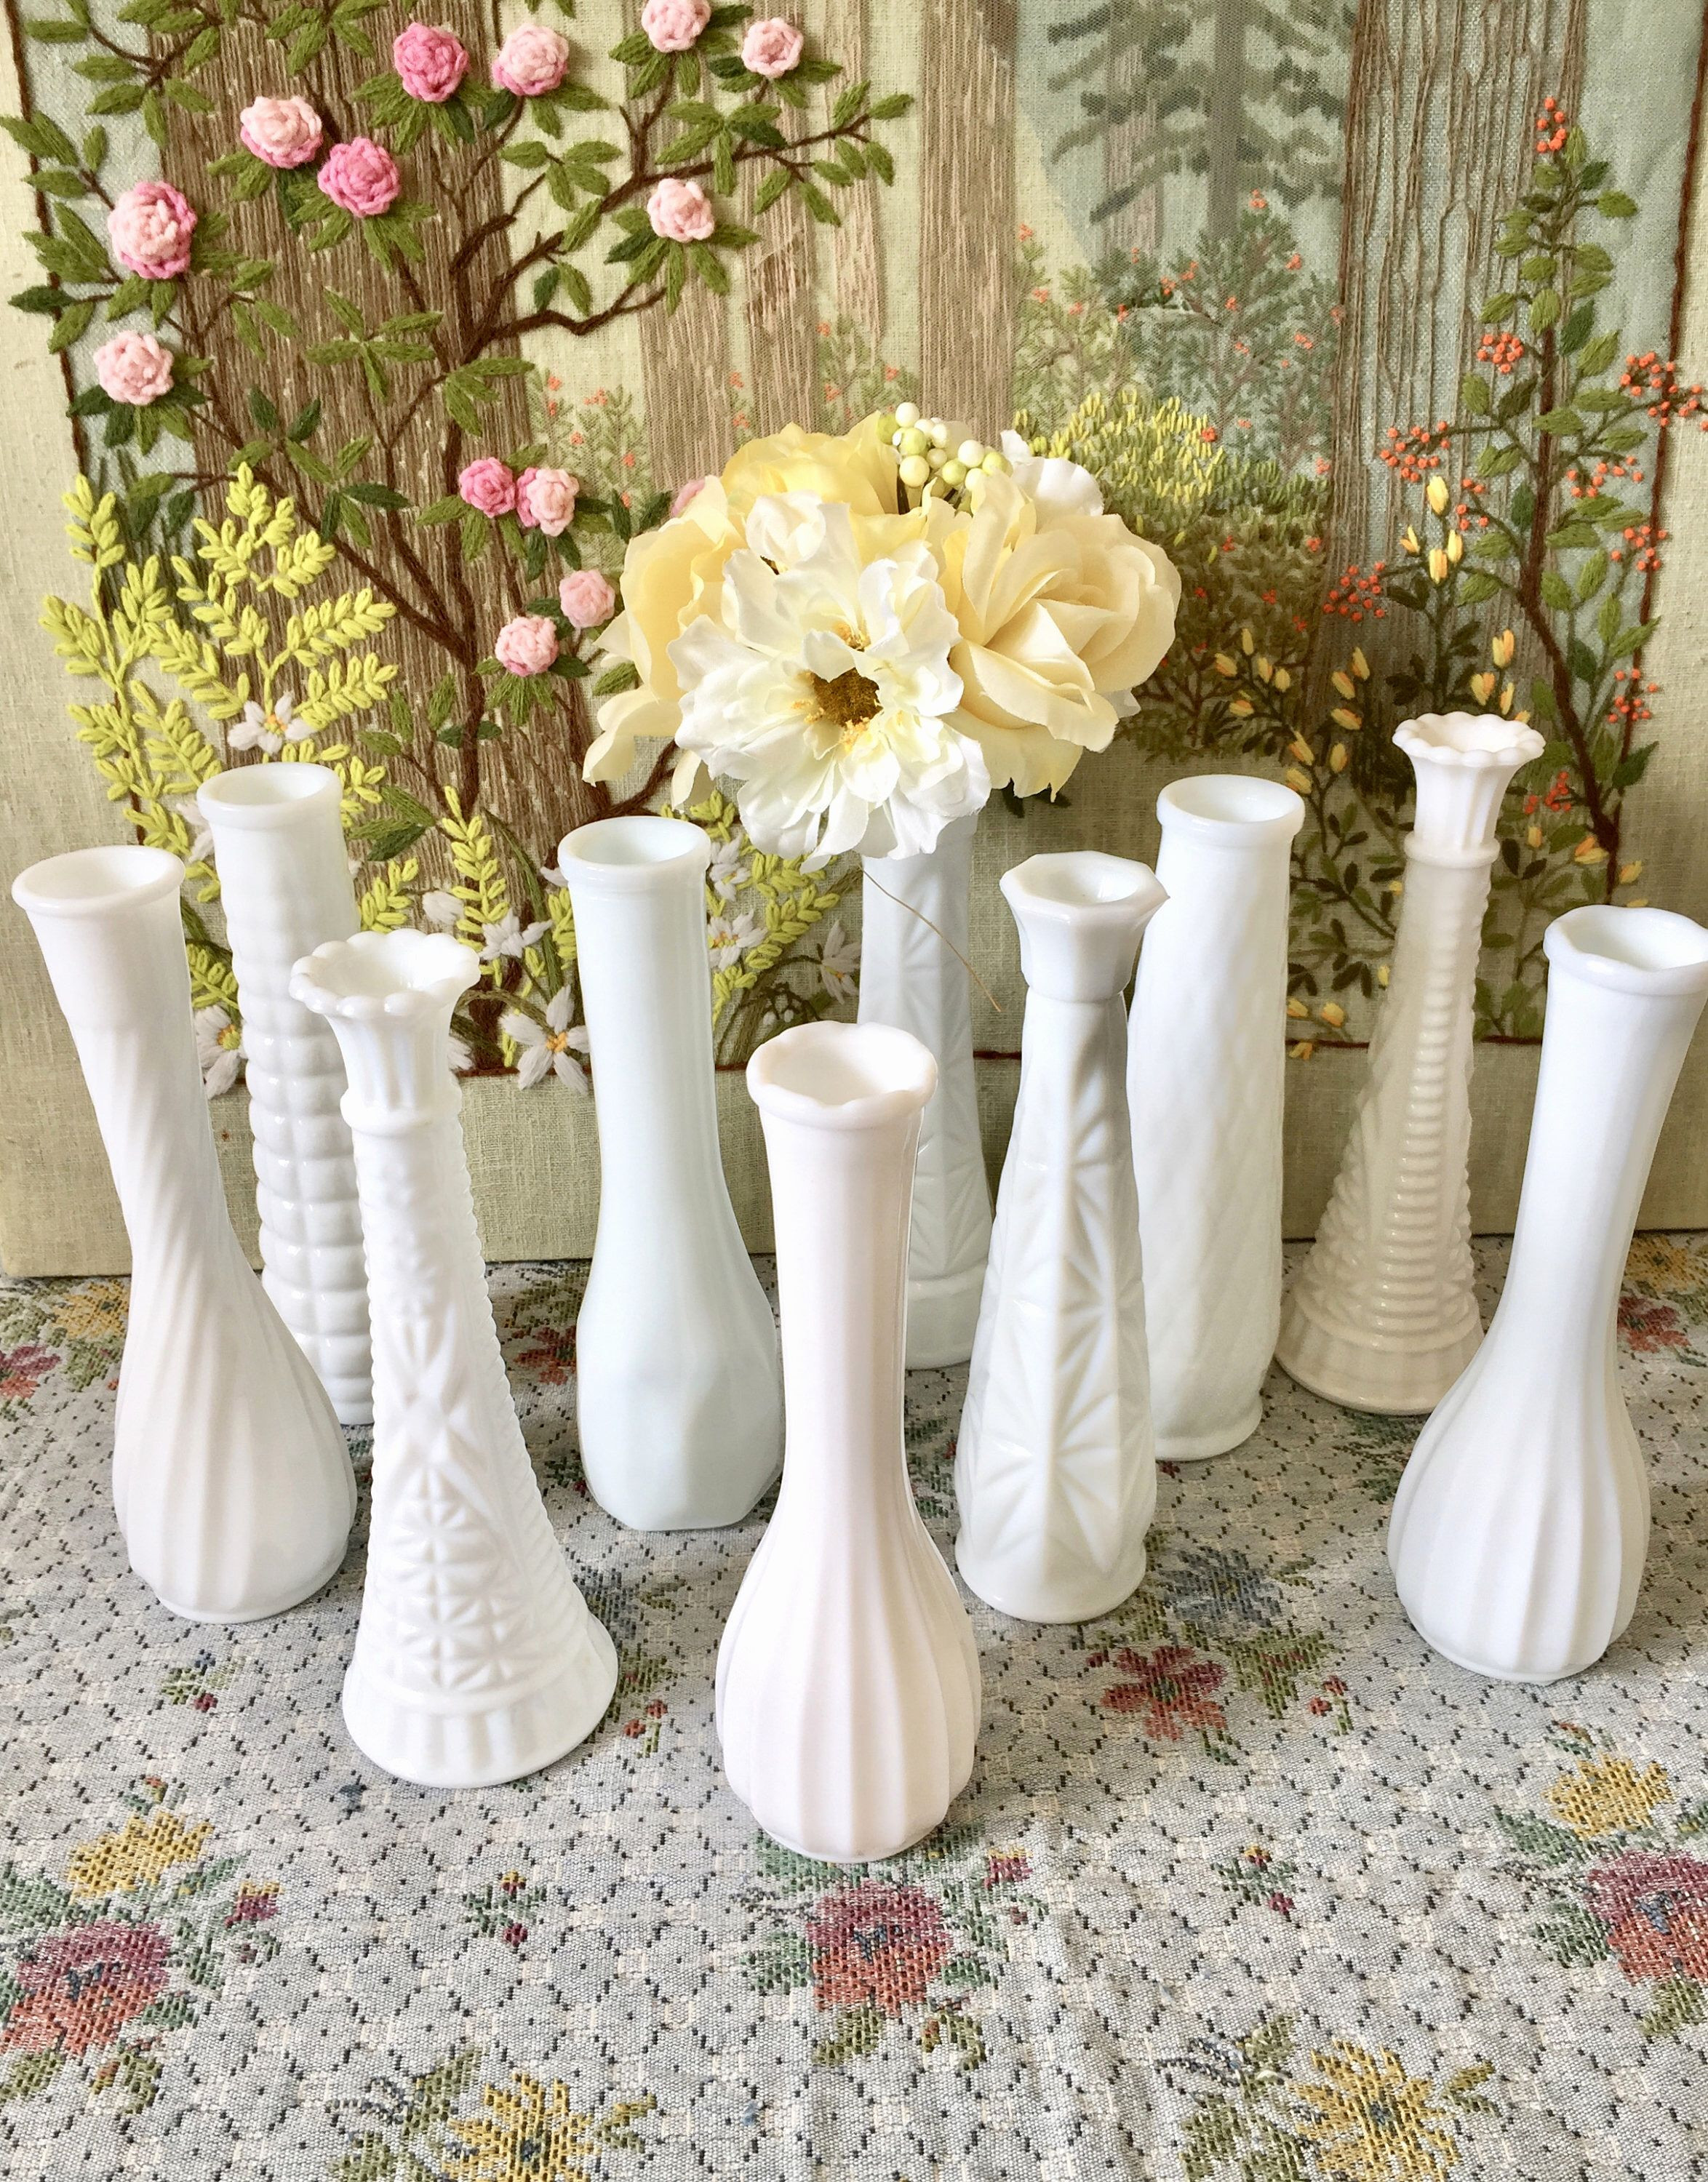 milk vase wedding centerpiece of 40 glass vases bulk the weekly world with regard to centerpiece vases in bulk vase and cellar image avorcor